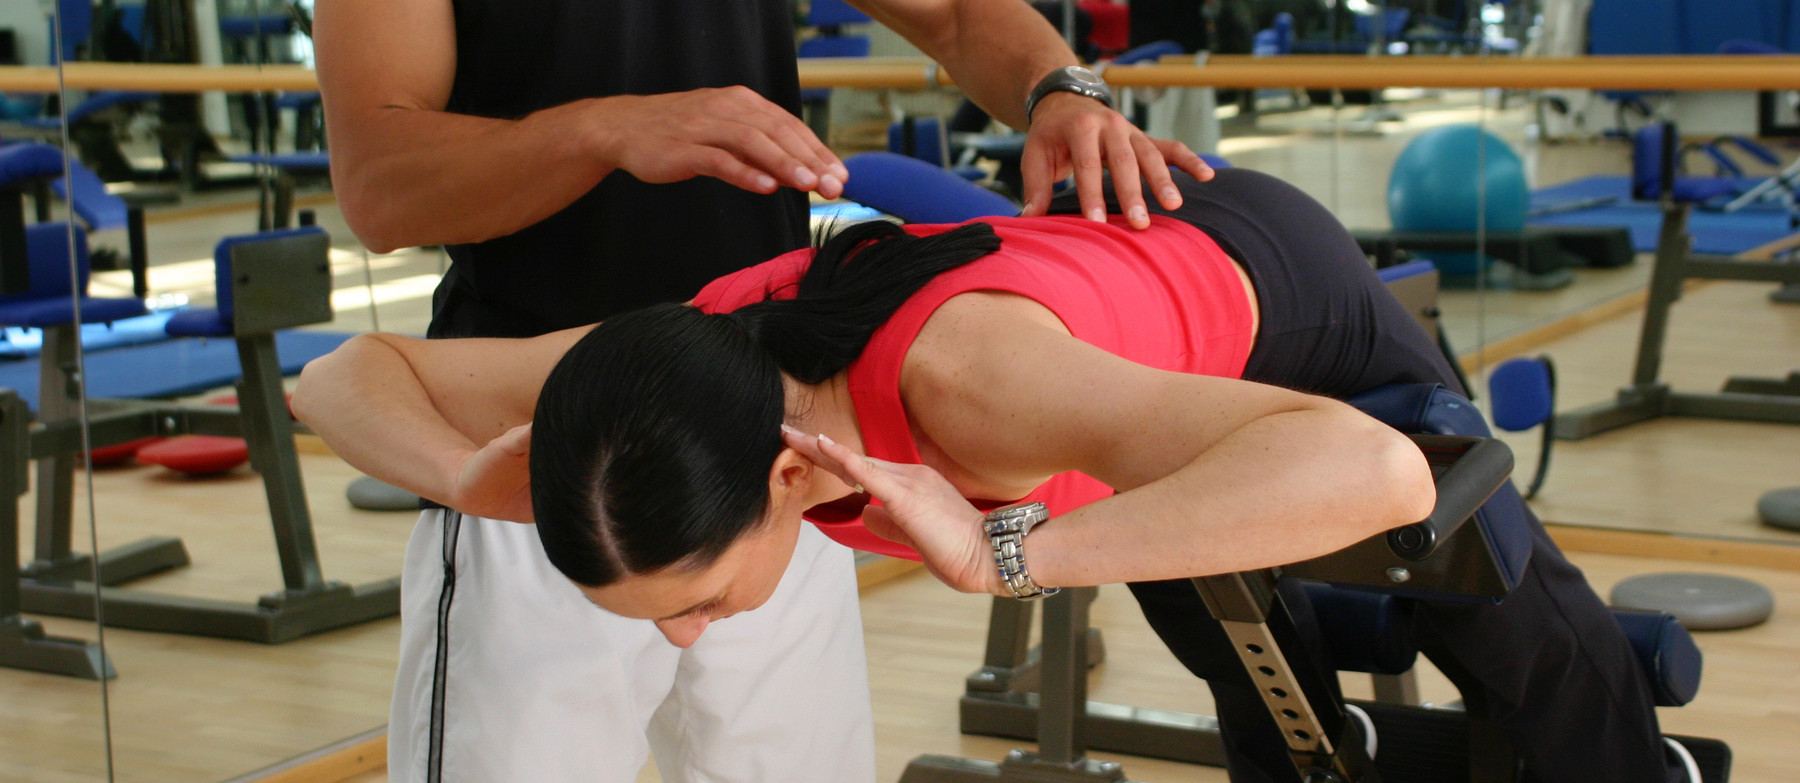 Top 4 easy to follow posture tips from a physio's perspective 1